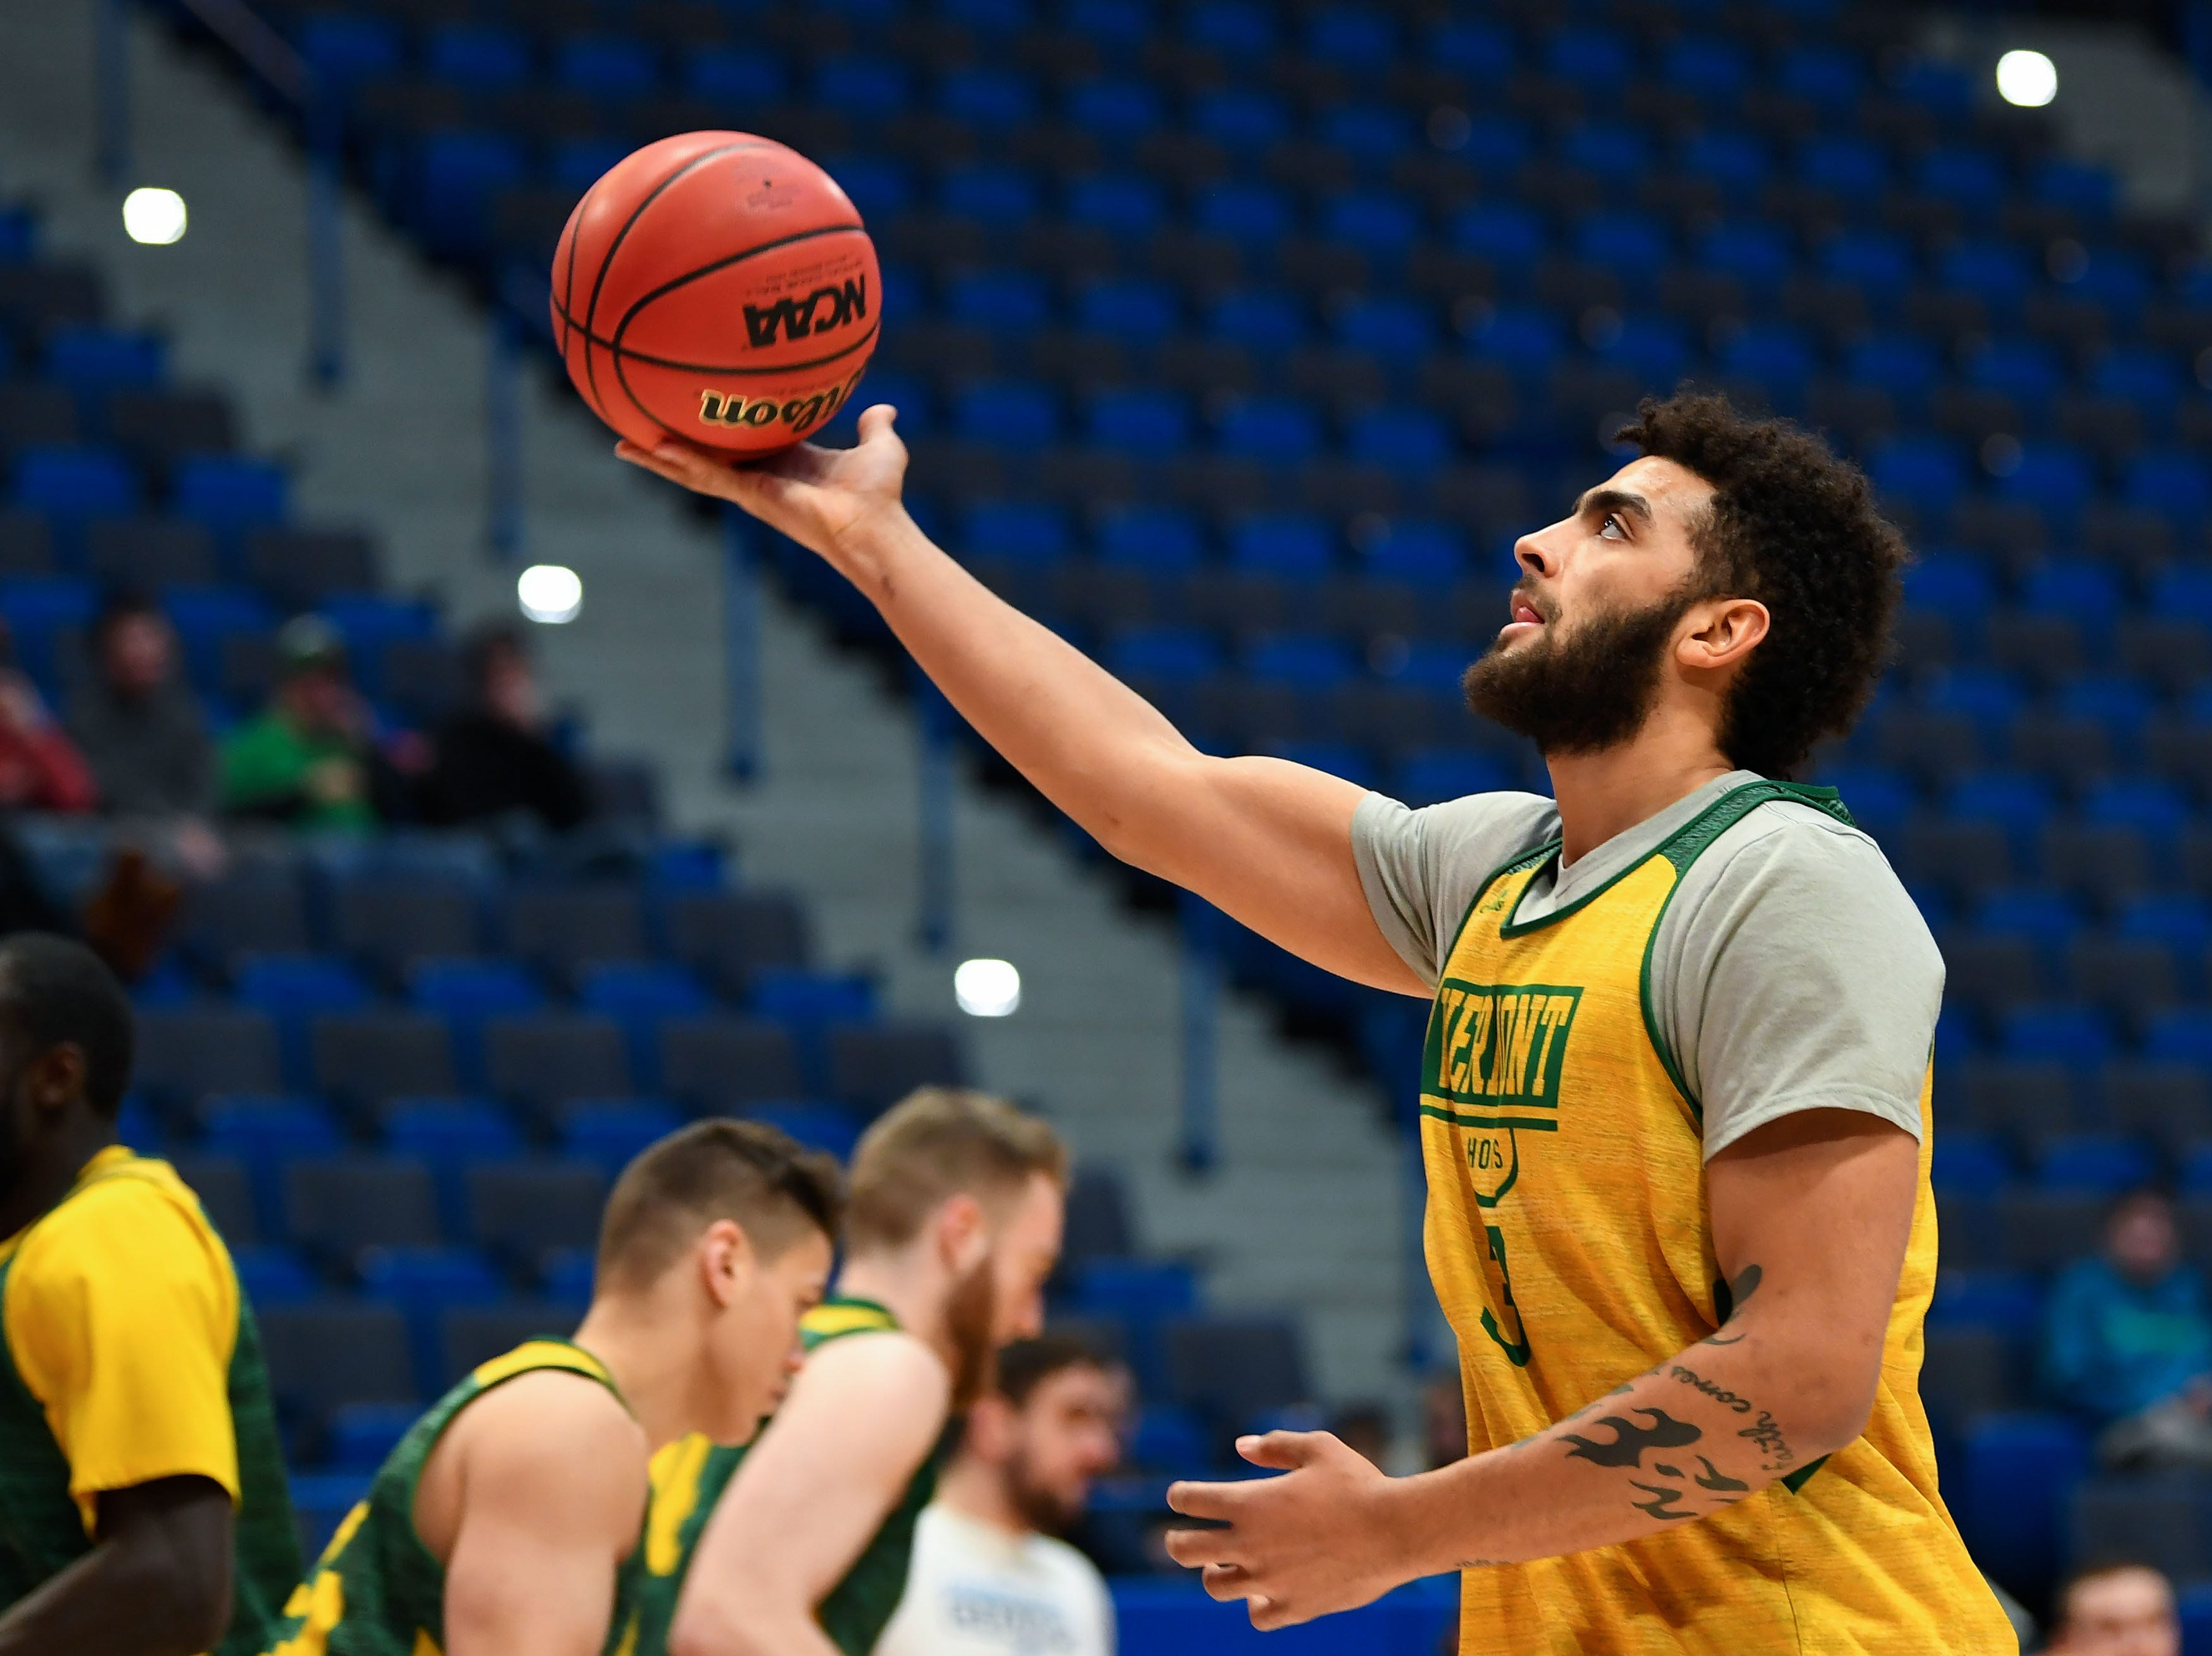 Mar 20, 2019; Hartford, CT, USA; Vermont Catamounts forward Anthony Lamb (3) attempts a layup during practice before the first round of the 2019 NCAA Tournament at XL Center. Mandatory Credit: Robert Deutsch-USA TODAY Sports